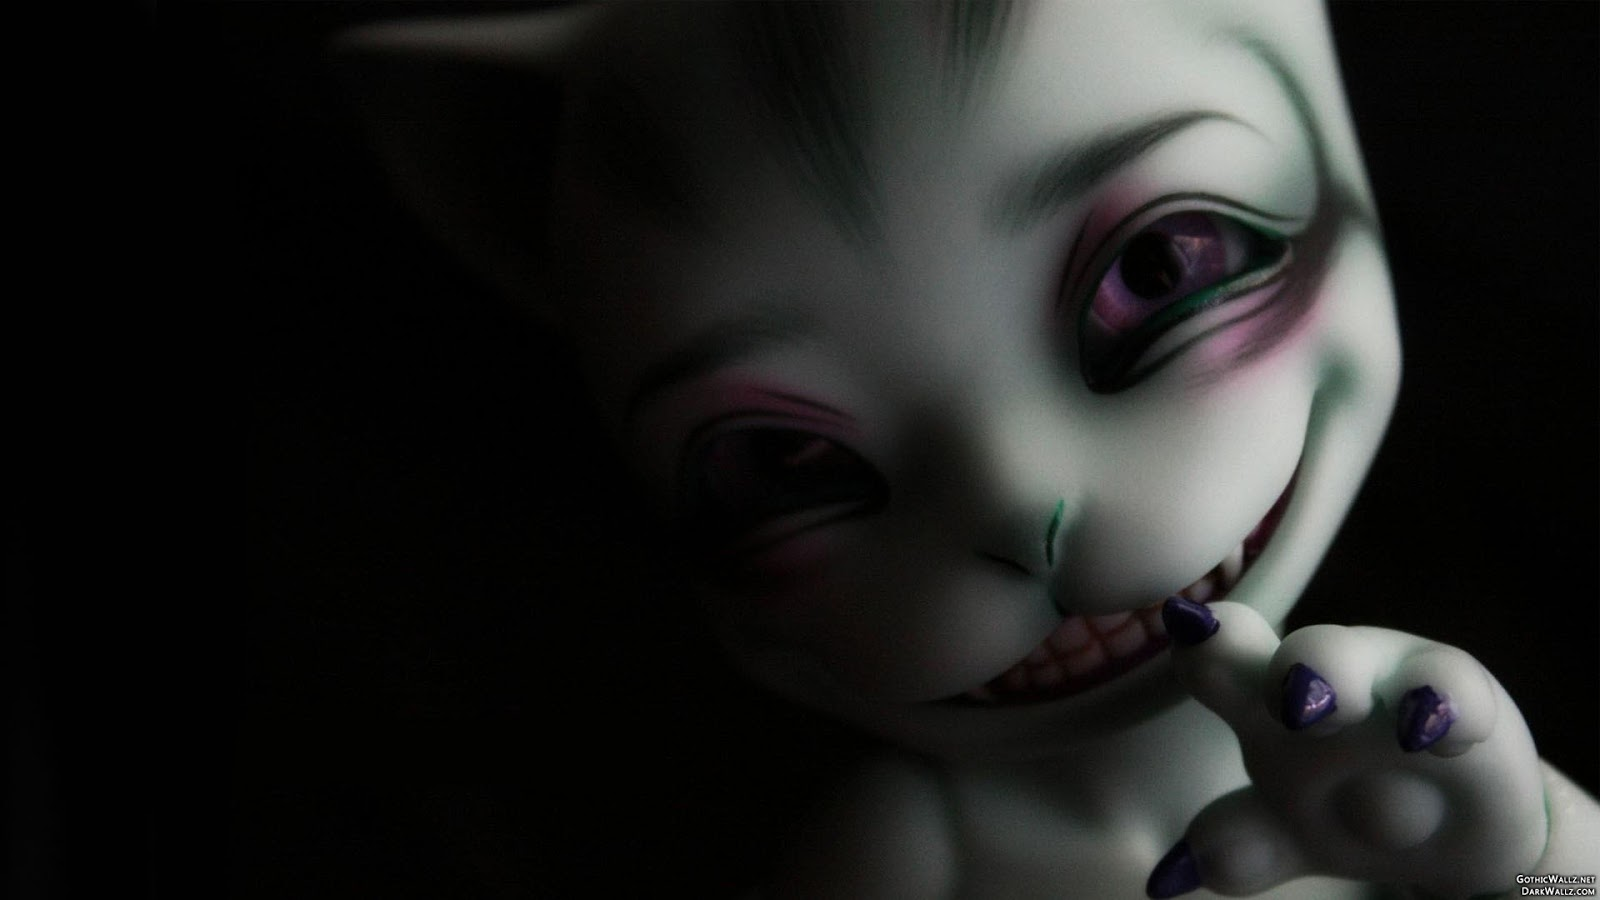 Scary weird creepy creature | Dark Gothic Wallpaper Download